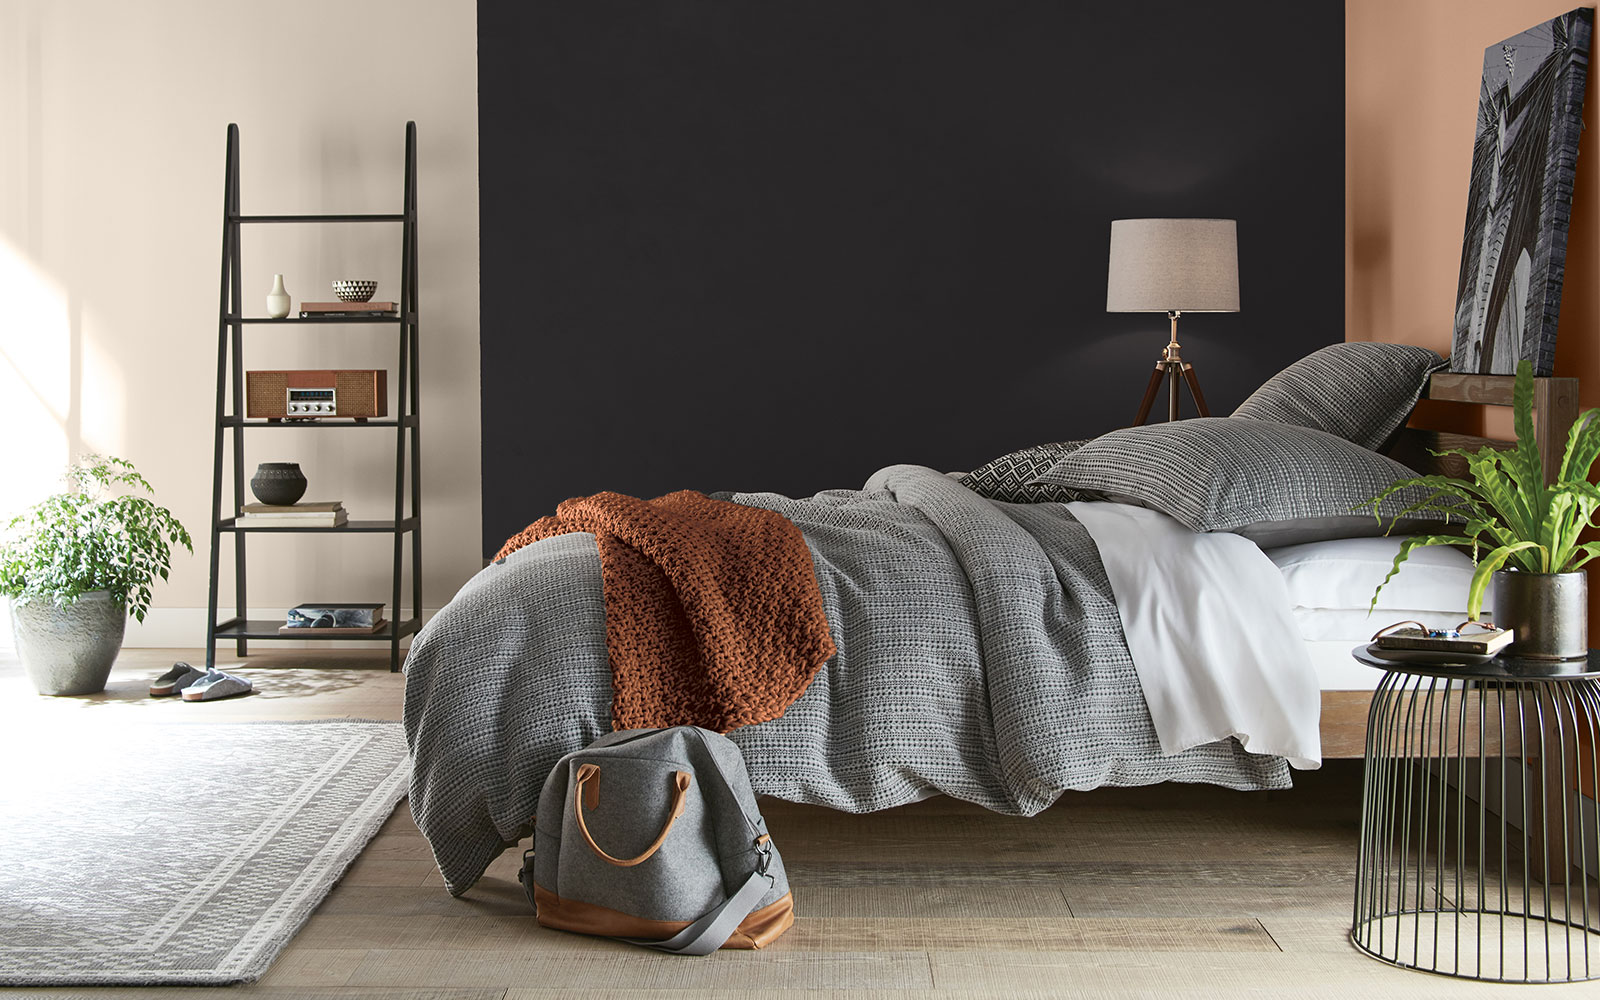 A bed room image with four color swatches sitting beside it. The image displays the four colors: A black hue is used on the side wall of the bedroom, a creamy white hue is used for a wall just outside of the bed area, a terra-cotta orange is used for a blanket, and a dusty orange hue is used on the headboard wall.